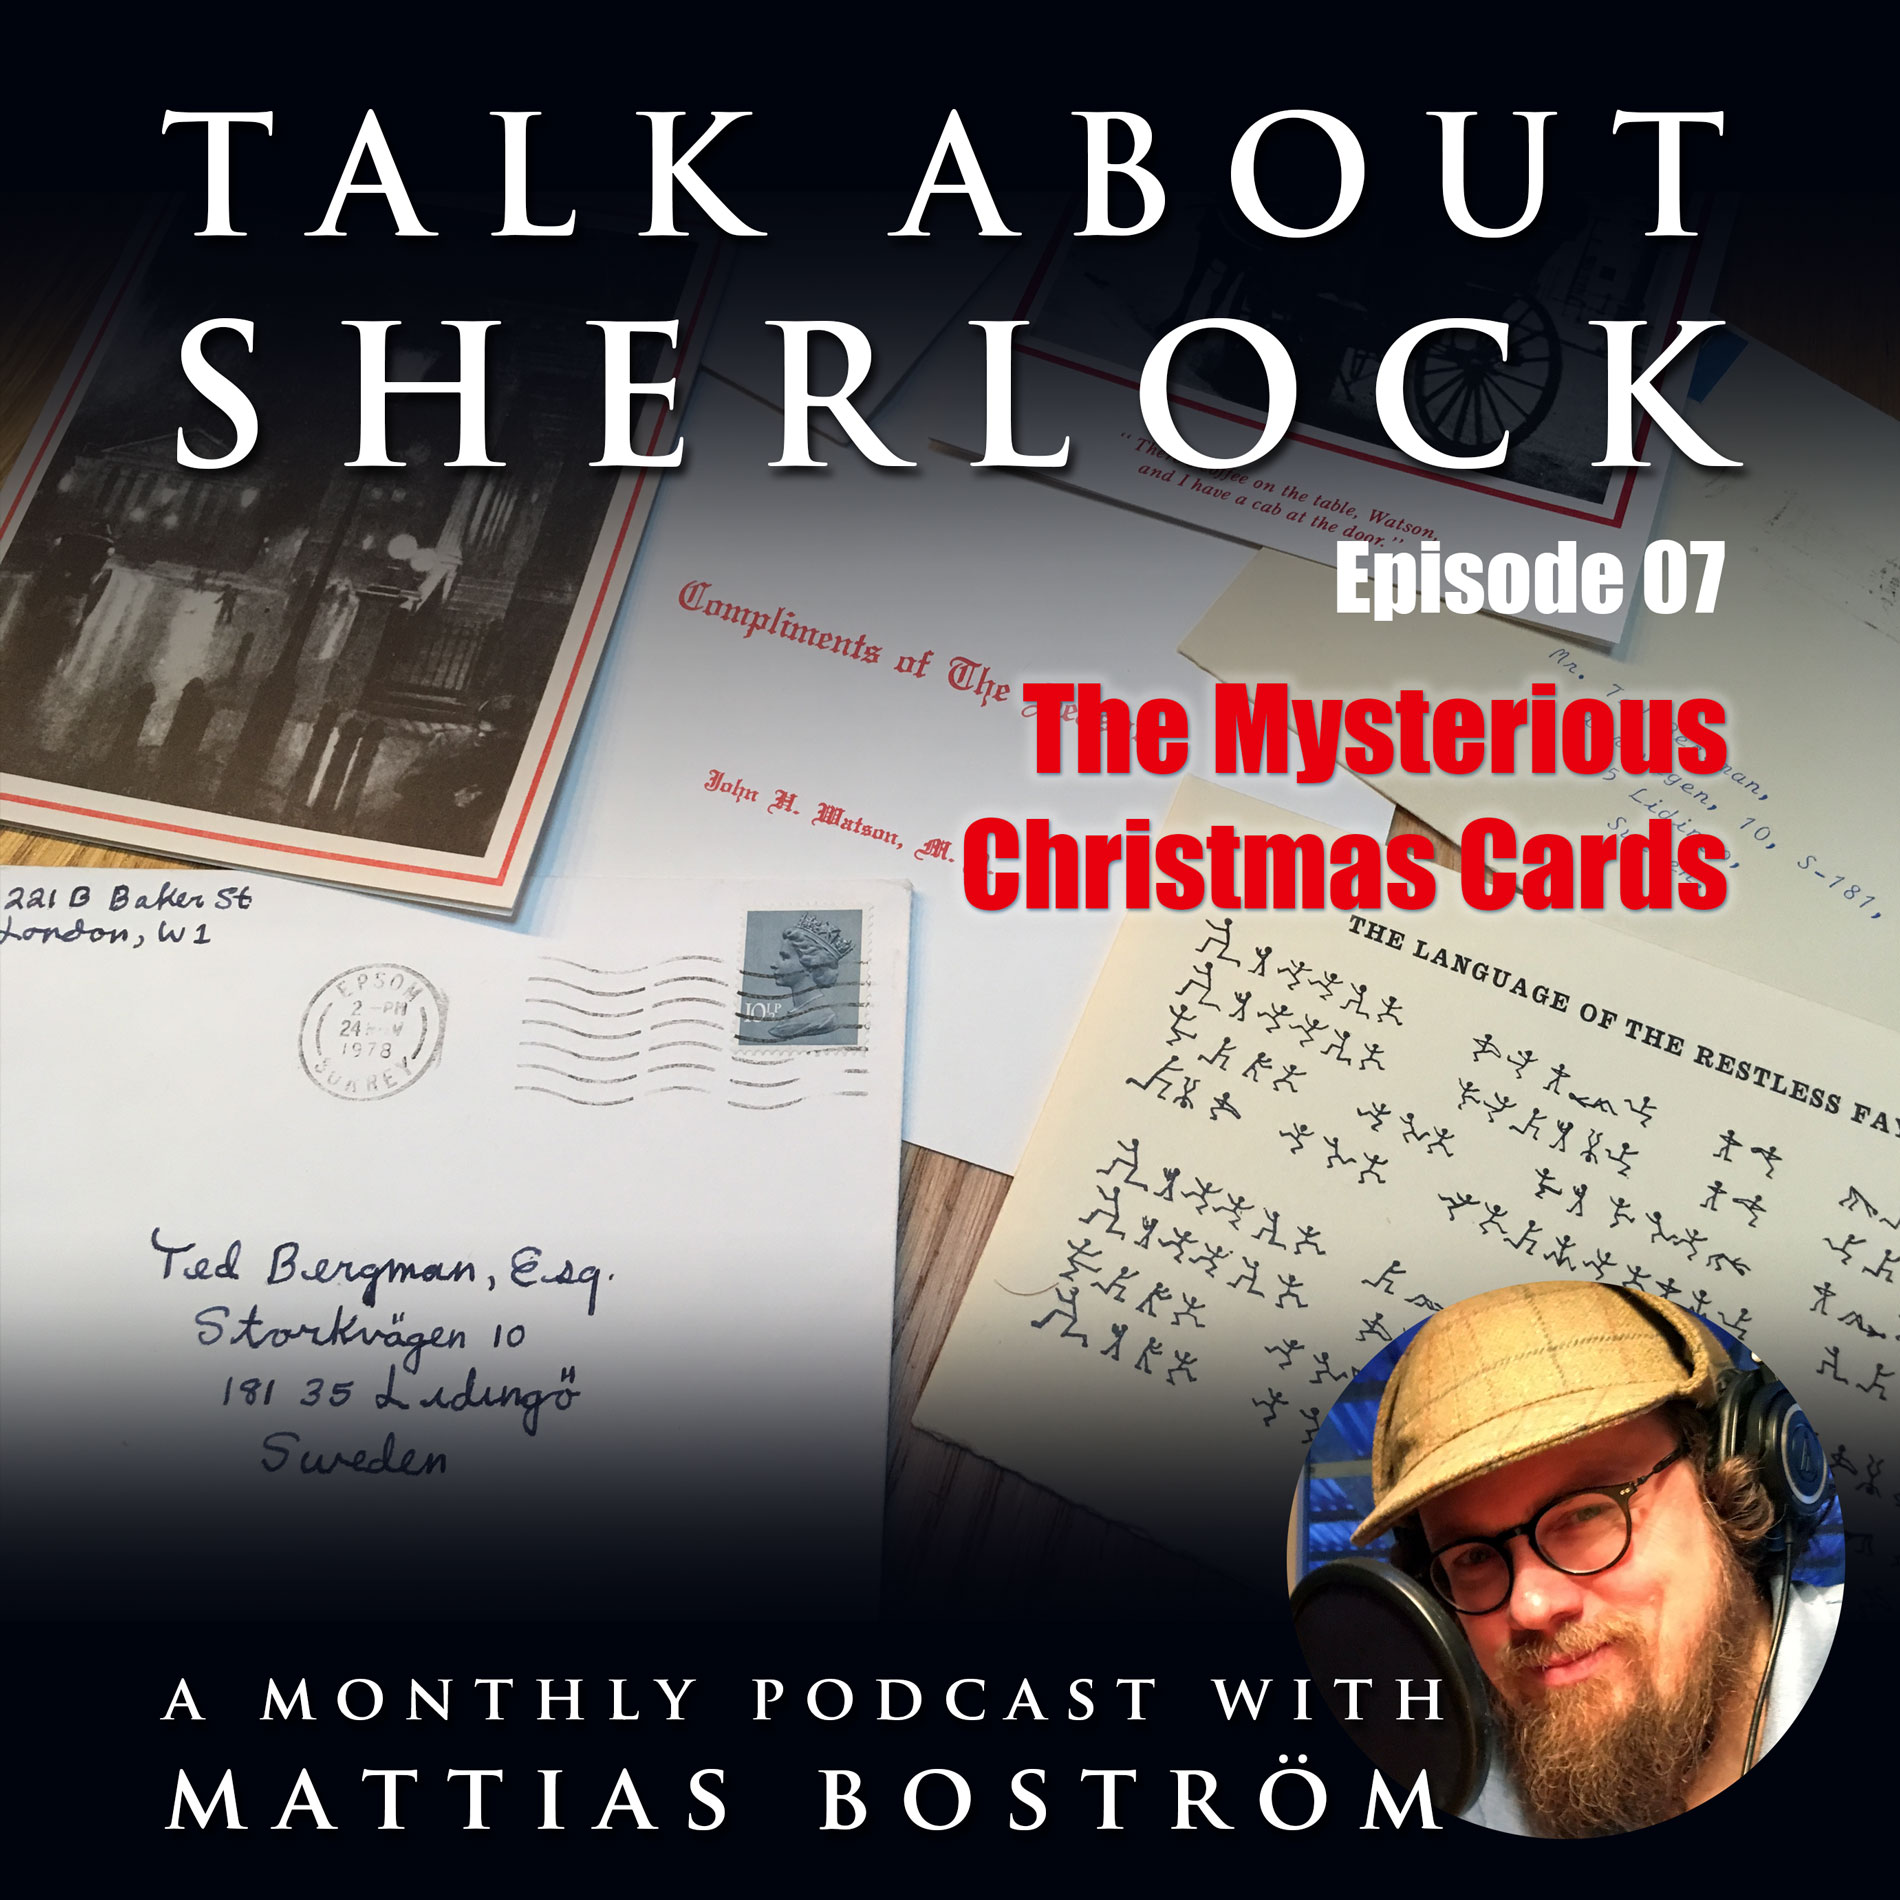 Episode 07: The Mysterious Christmas Cards